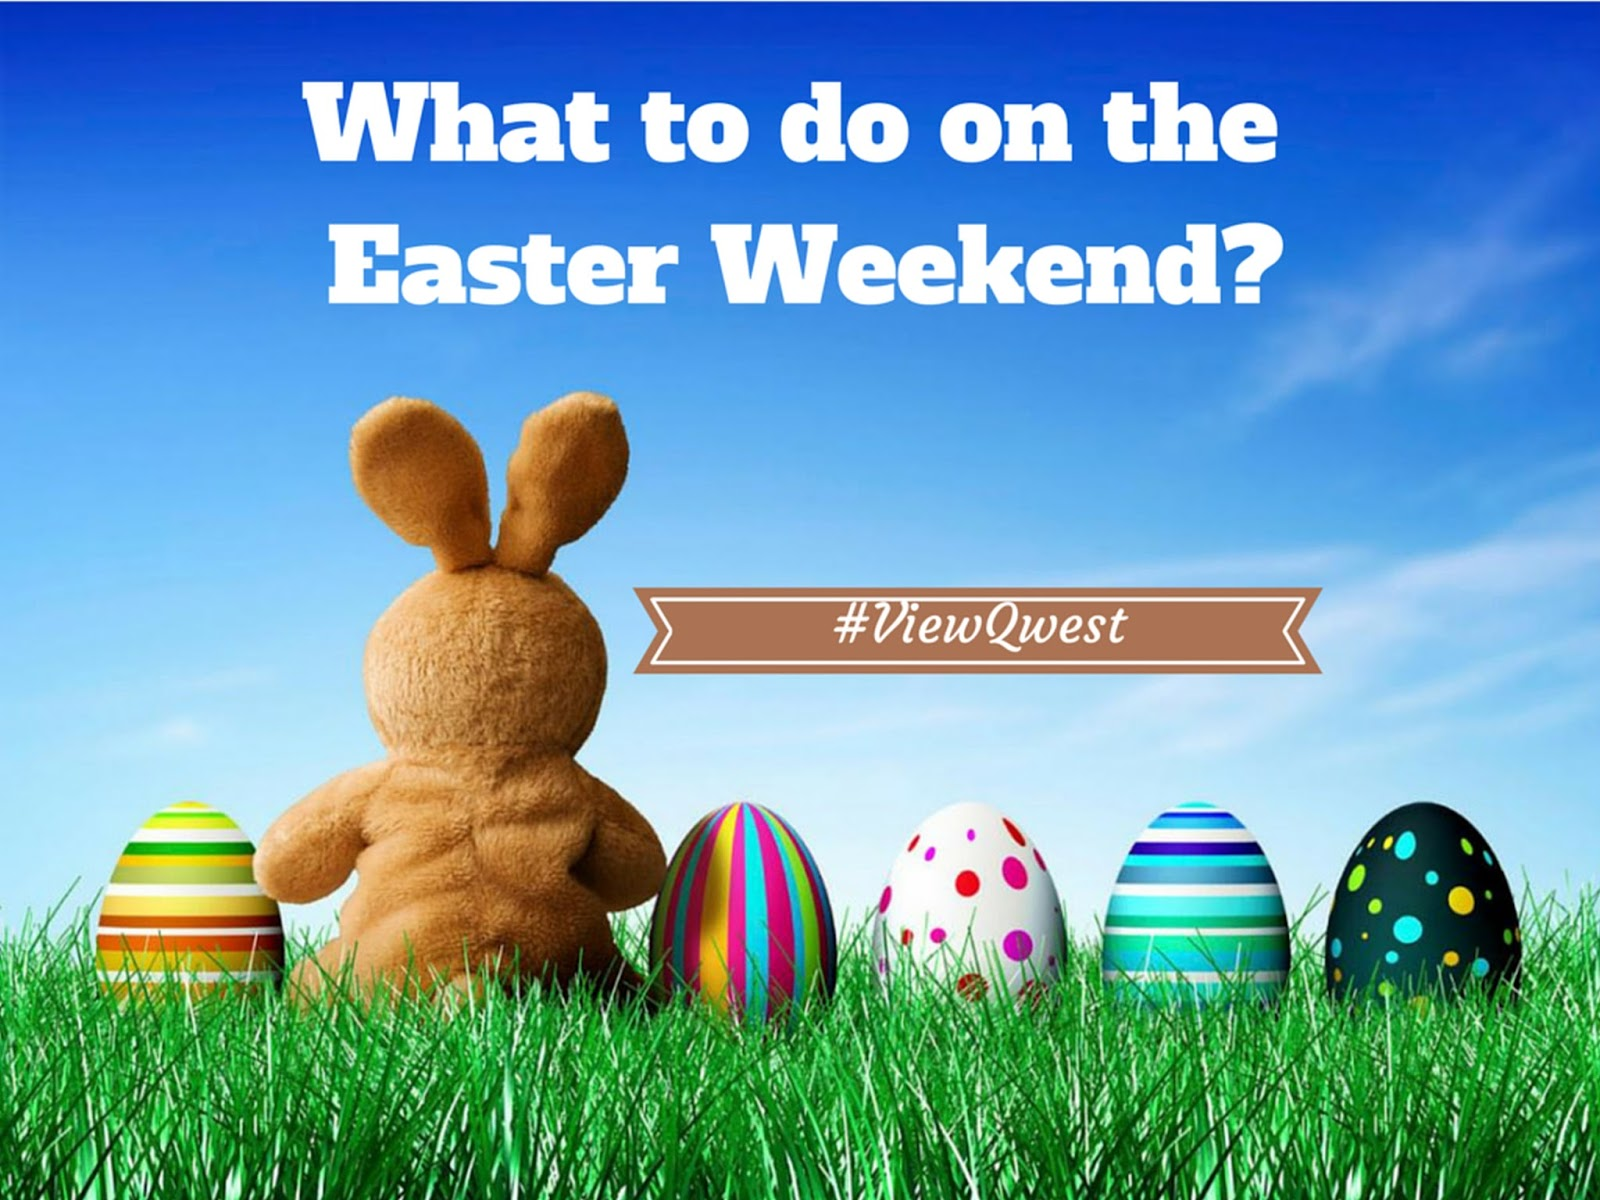 What to do on the Easter Weekend